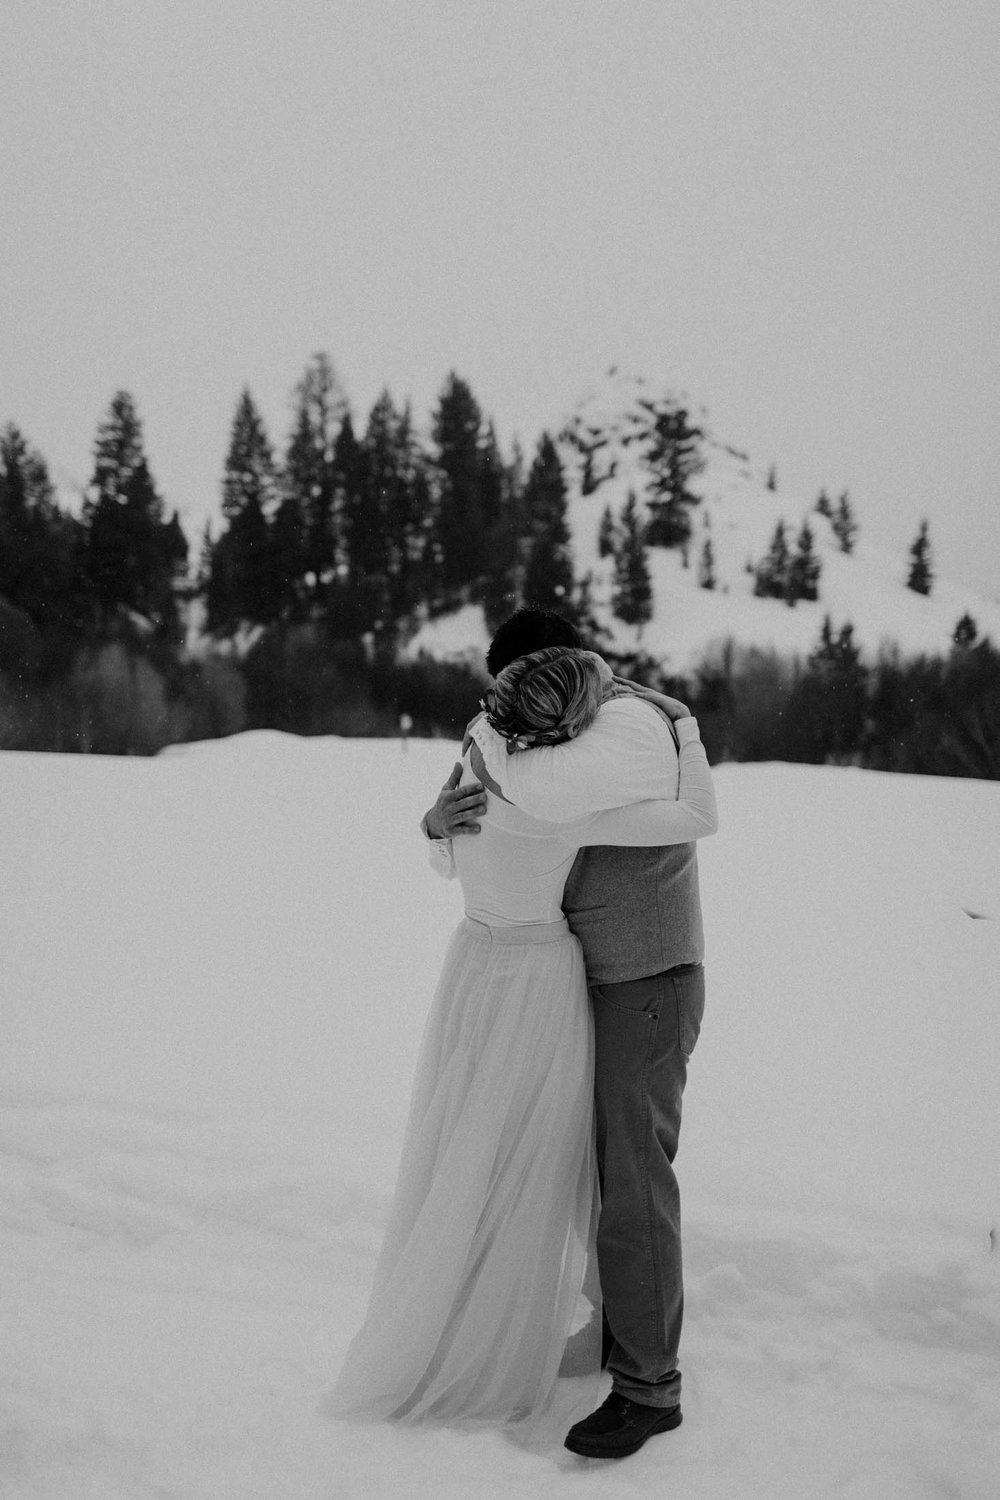 H_J_SunValley_winter_wedding-59.jpg